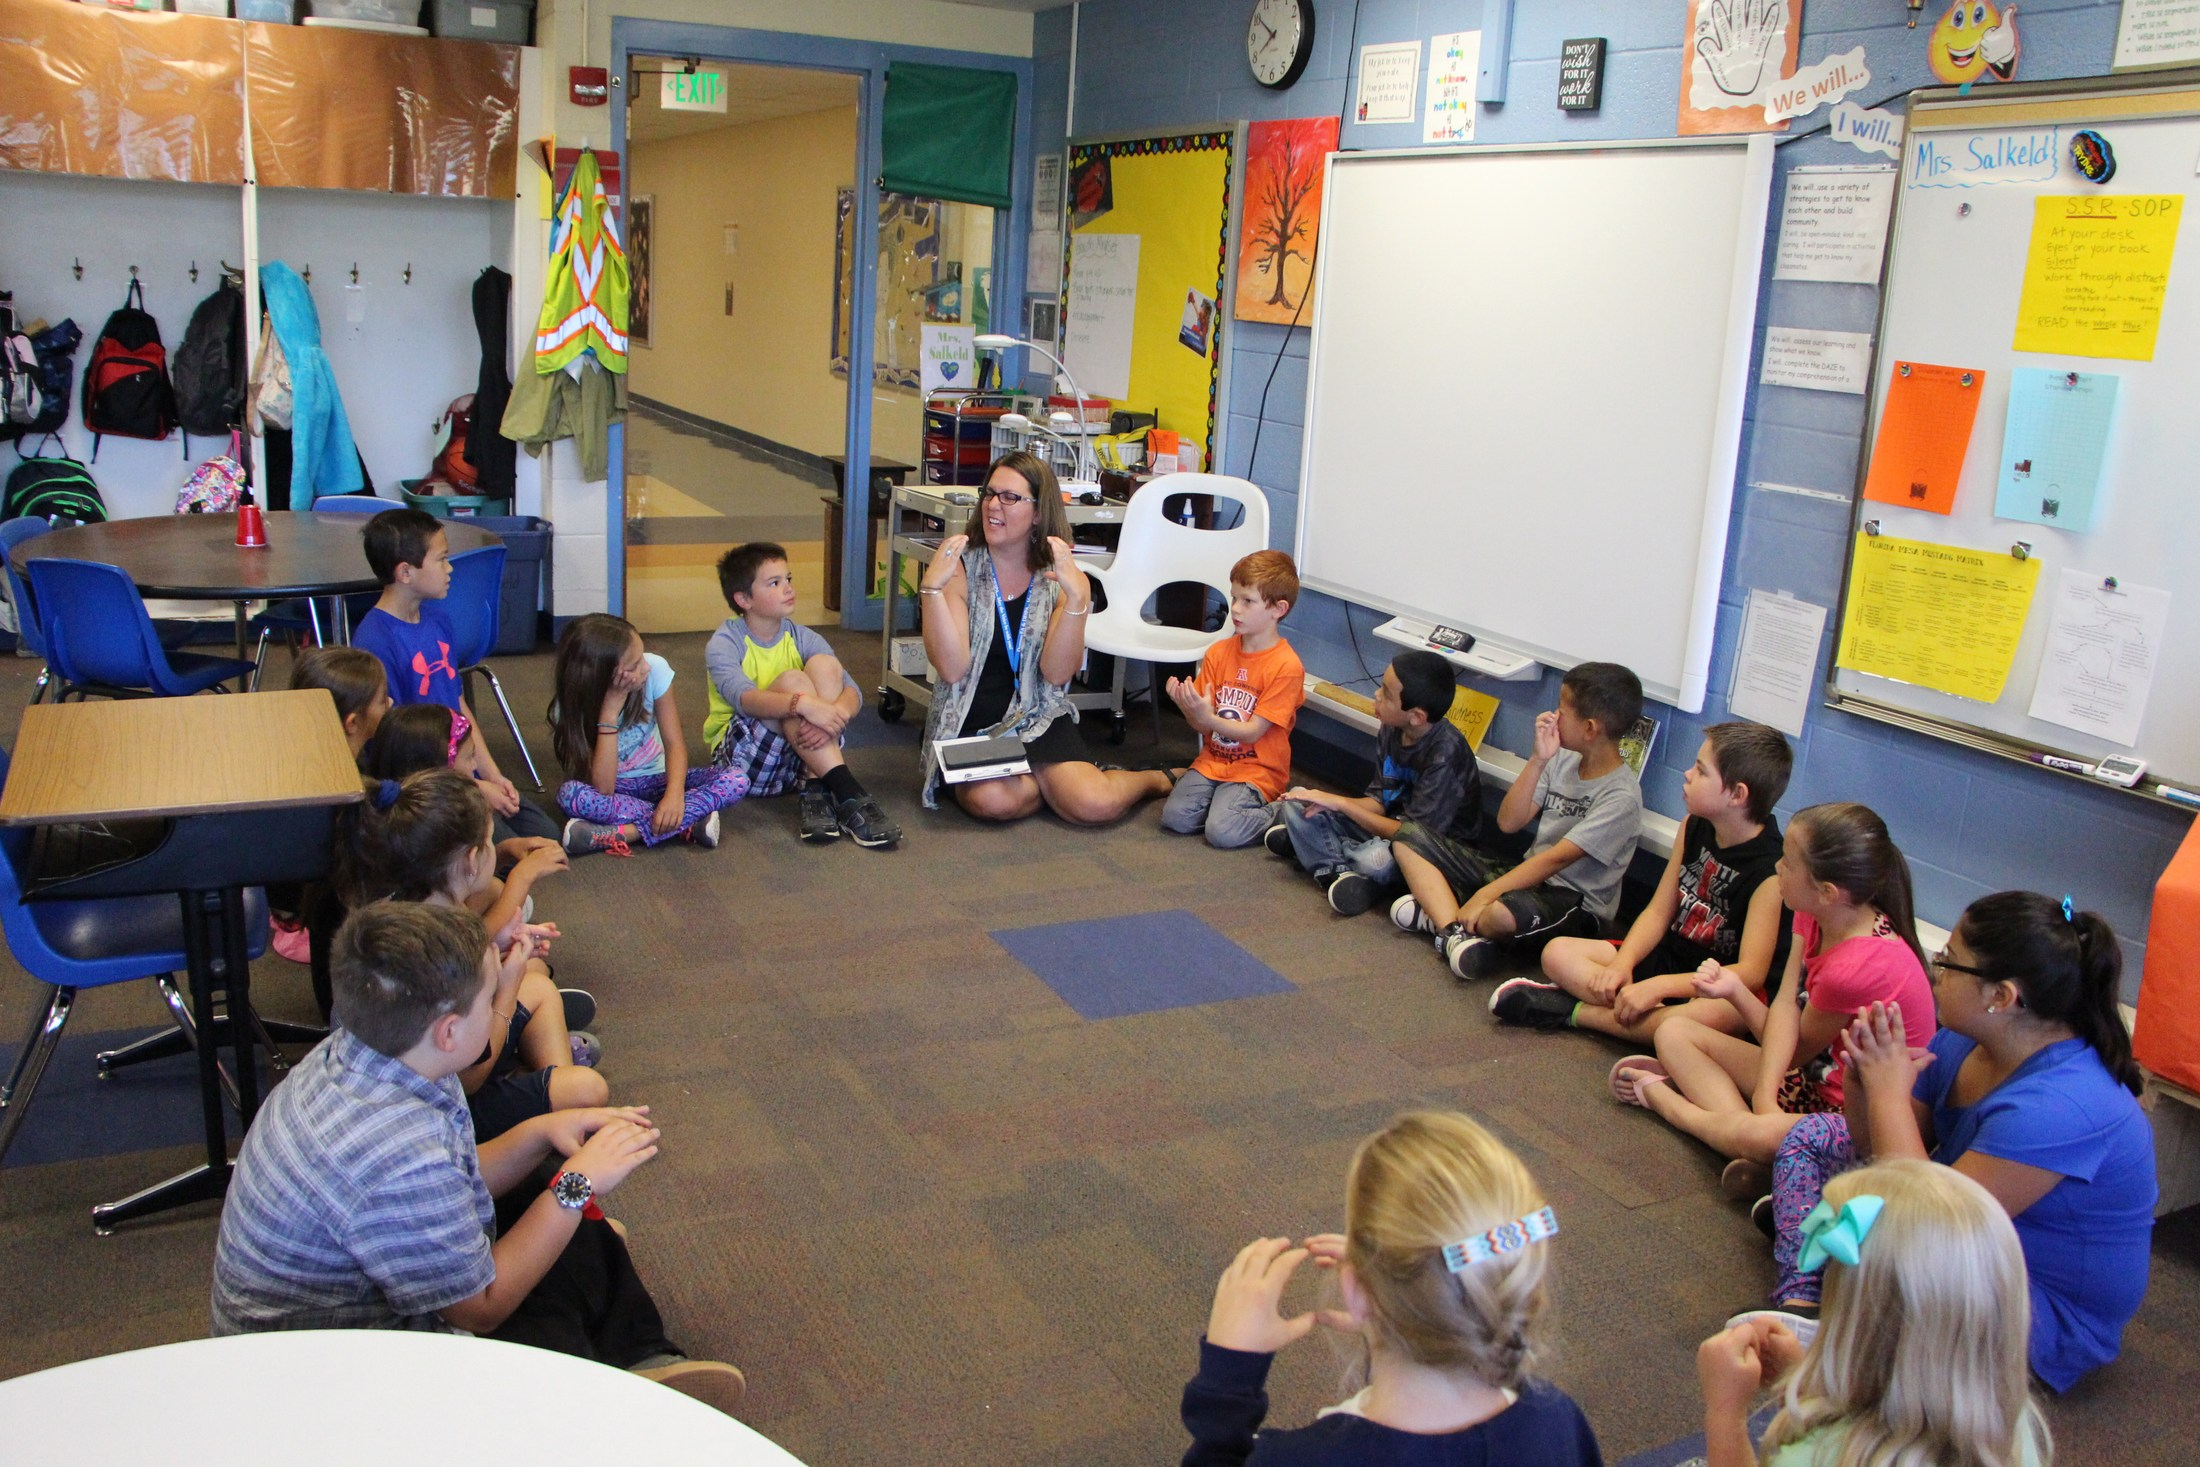 Students and teacher in a 3rd grade classroom.